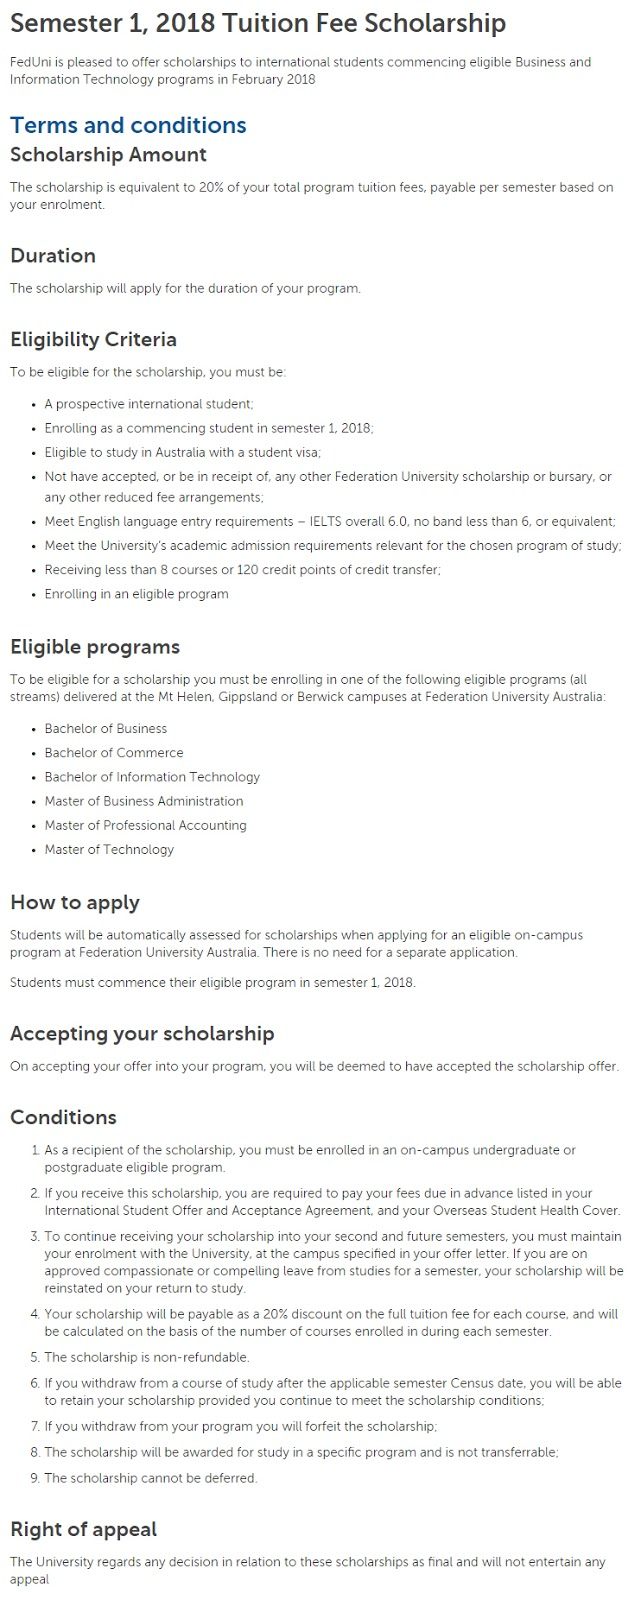 Federation University Tuition Fee Scholarships for International Students in Australia